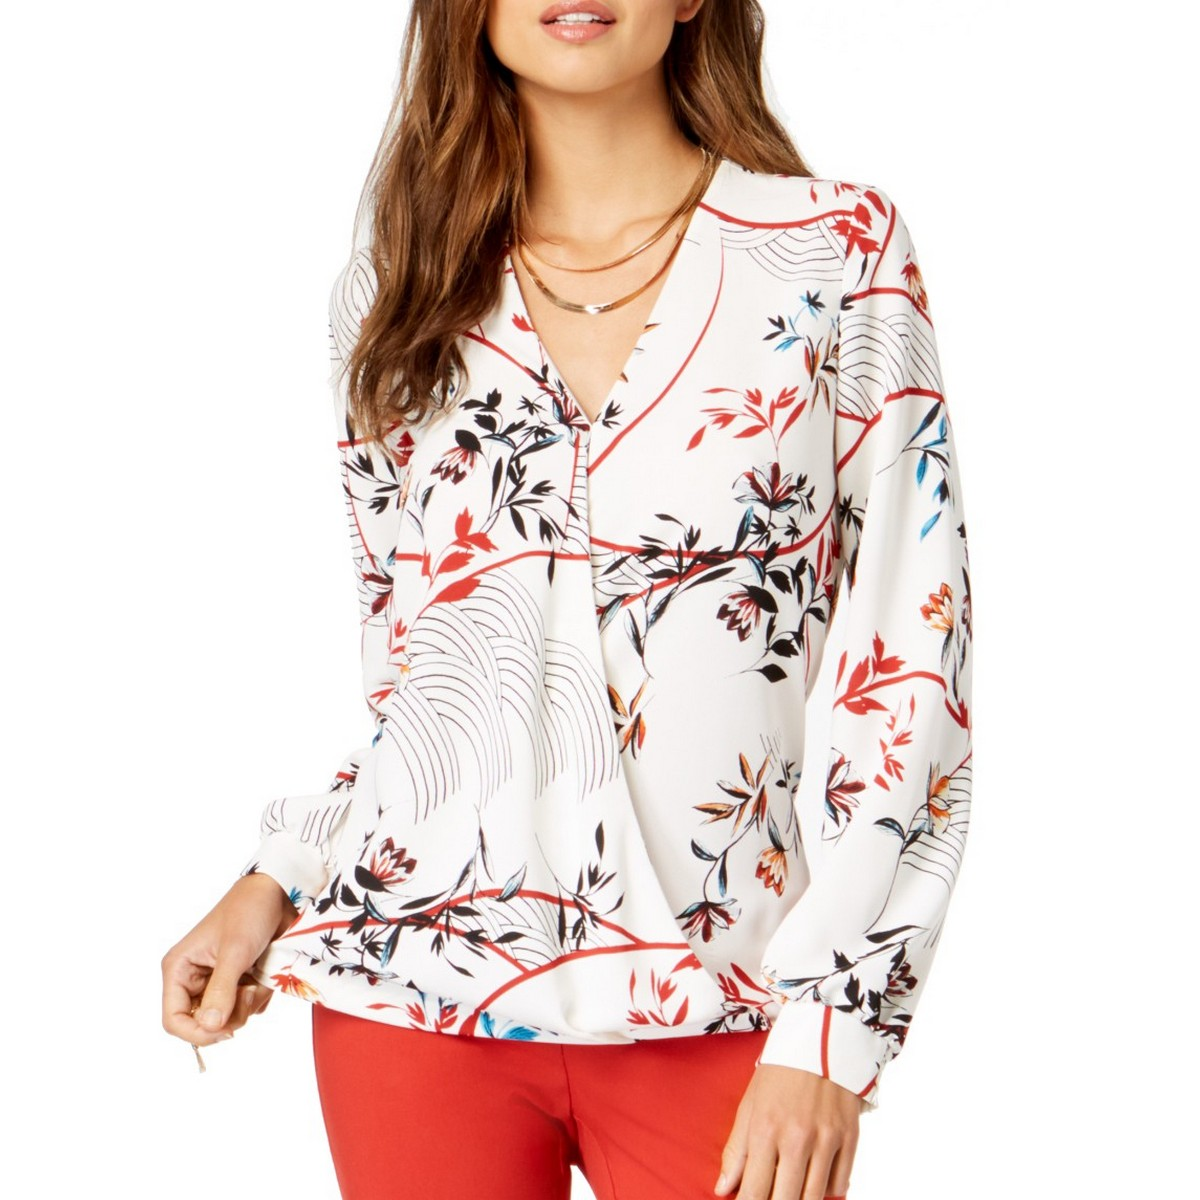 ALFANI-NEW-Women-039-s-White-Floral-Print-Surplice-Blouse-Shirt-Top-XL-TEDO